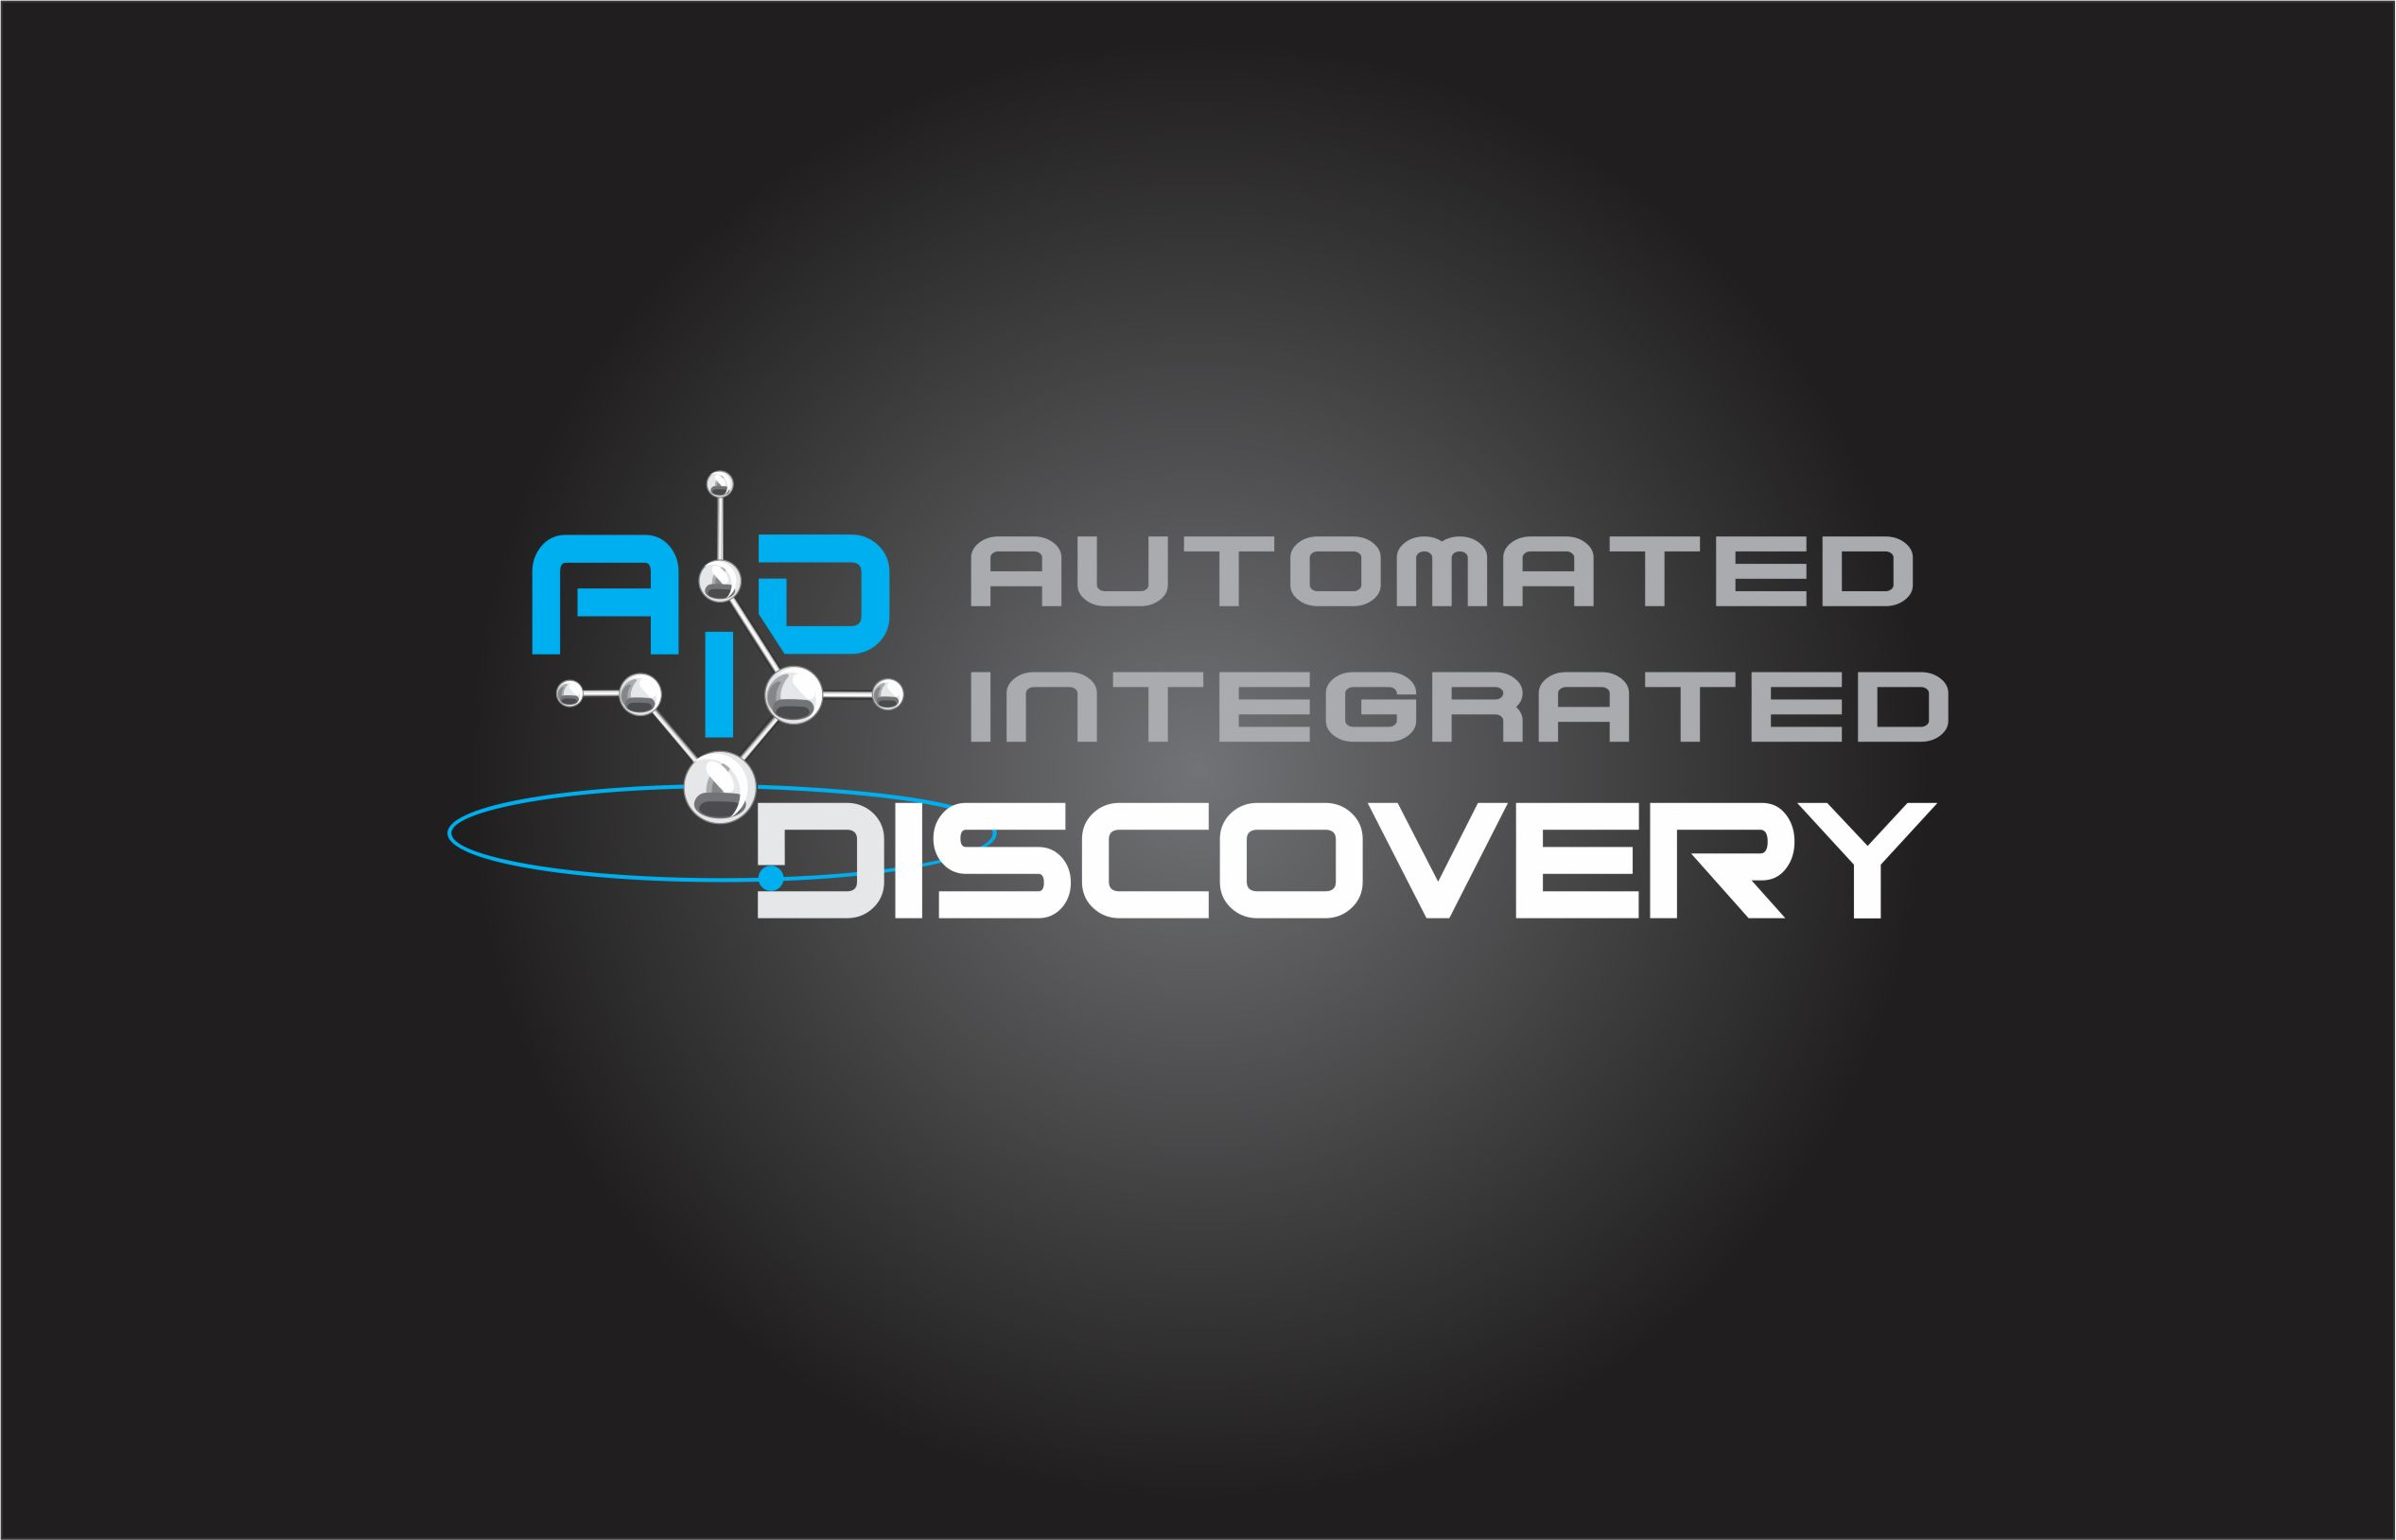 Logo Design by Nikola Kapunac - Entry No. 74 in the Logo Design Contest Automated Integrated Discovery  Logo Design.